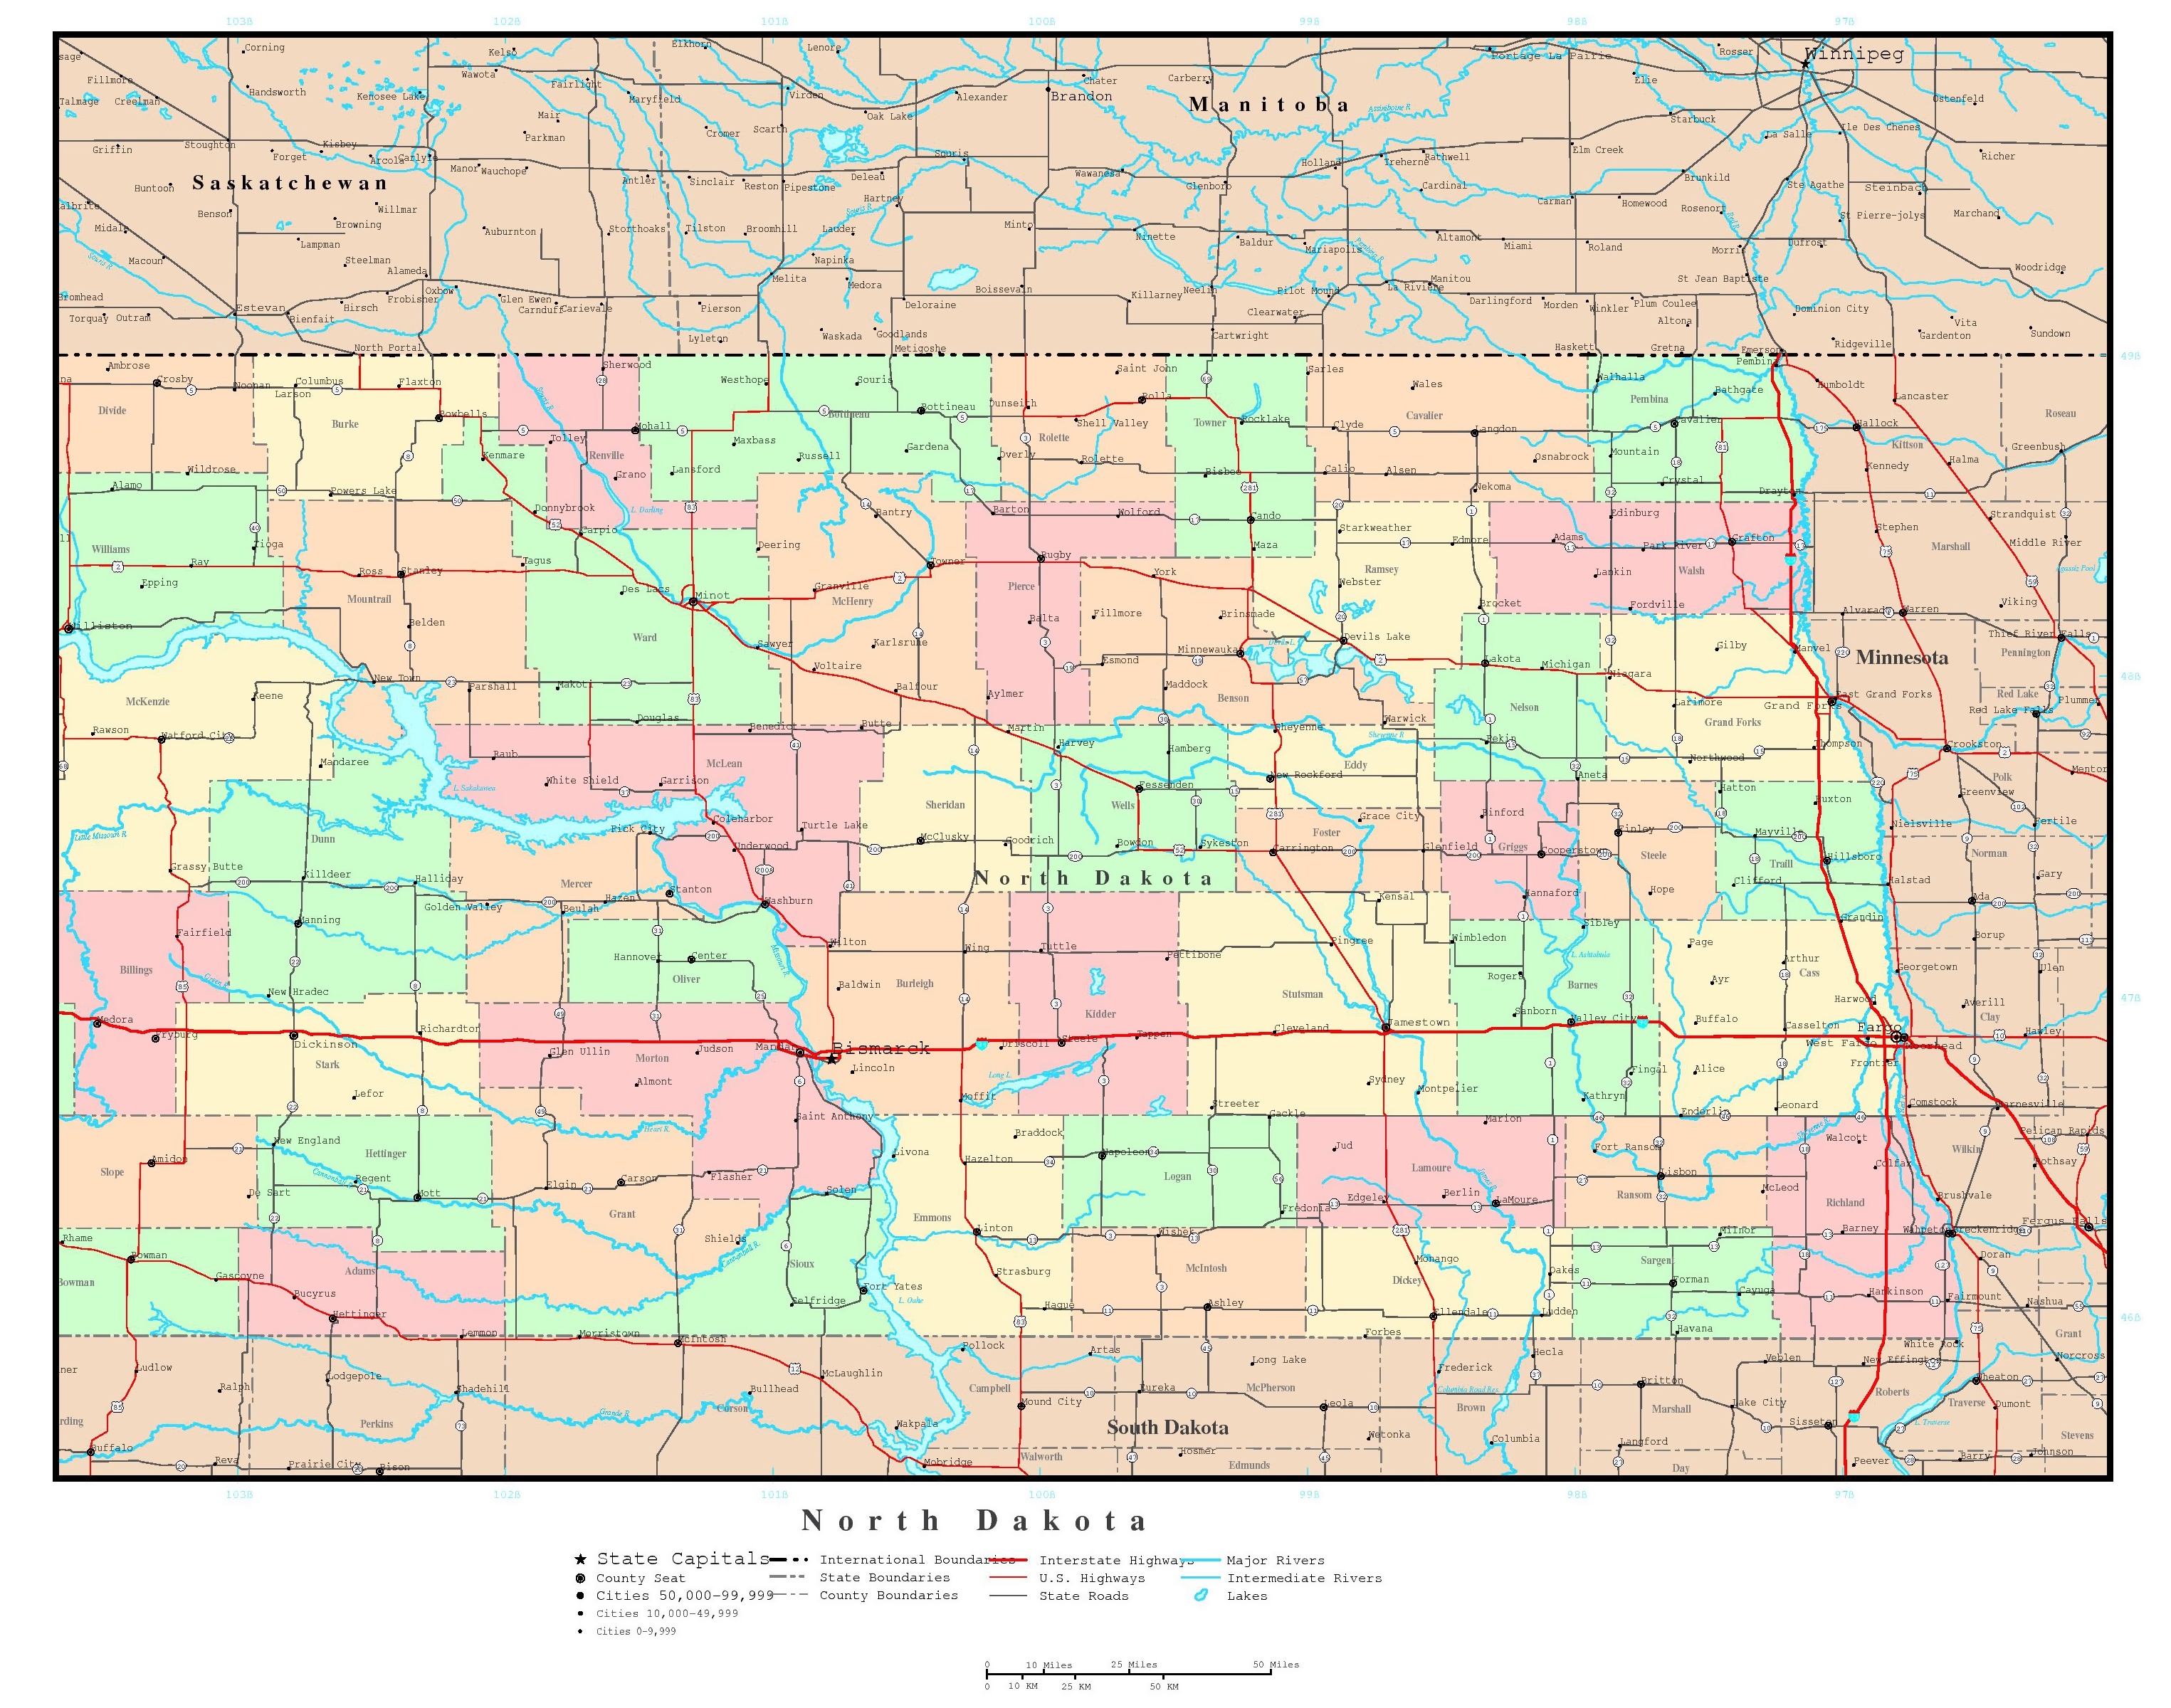 Large Detailed Administrative Map Of North Dakota State With Roads - North dakota map